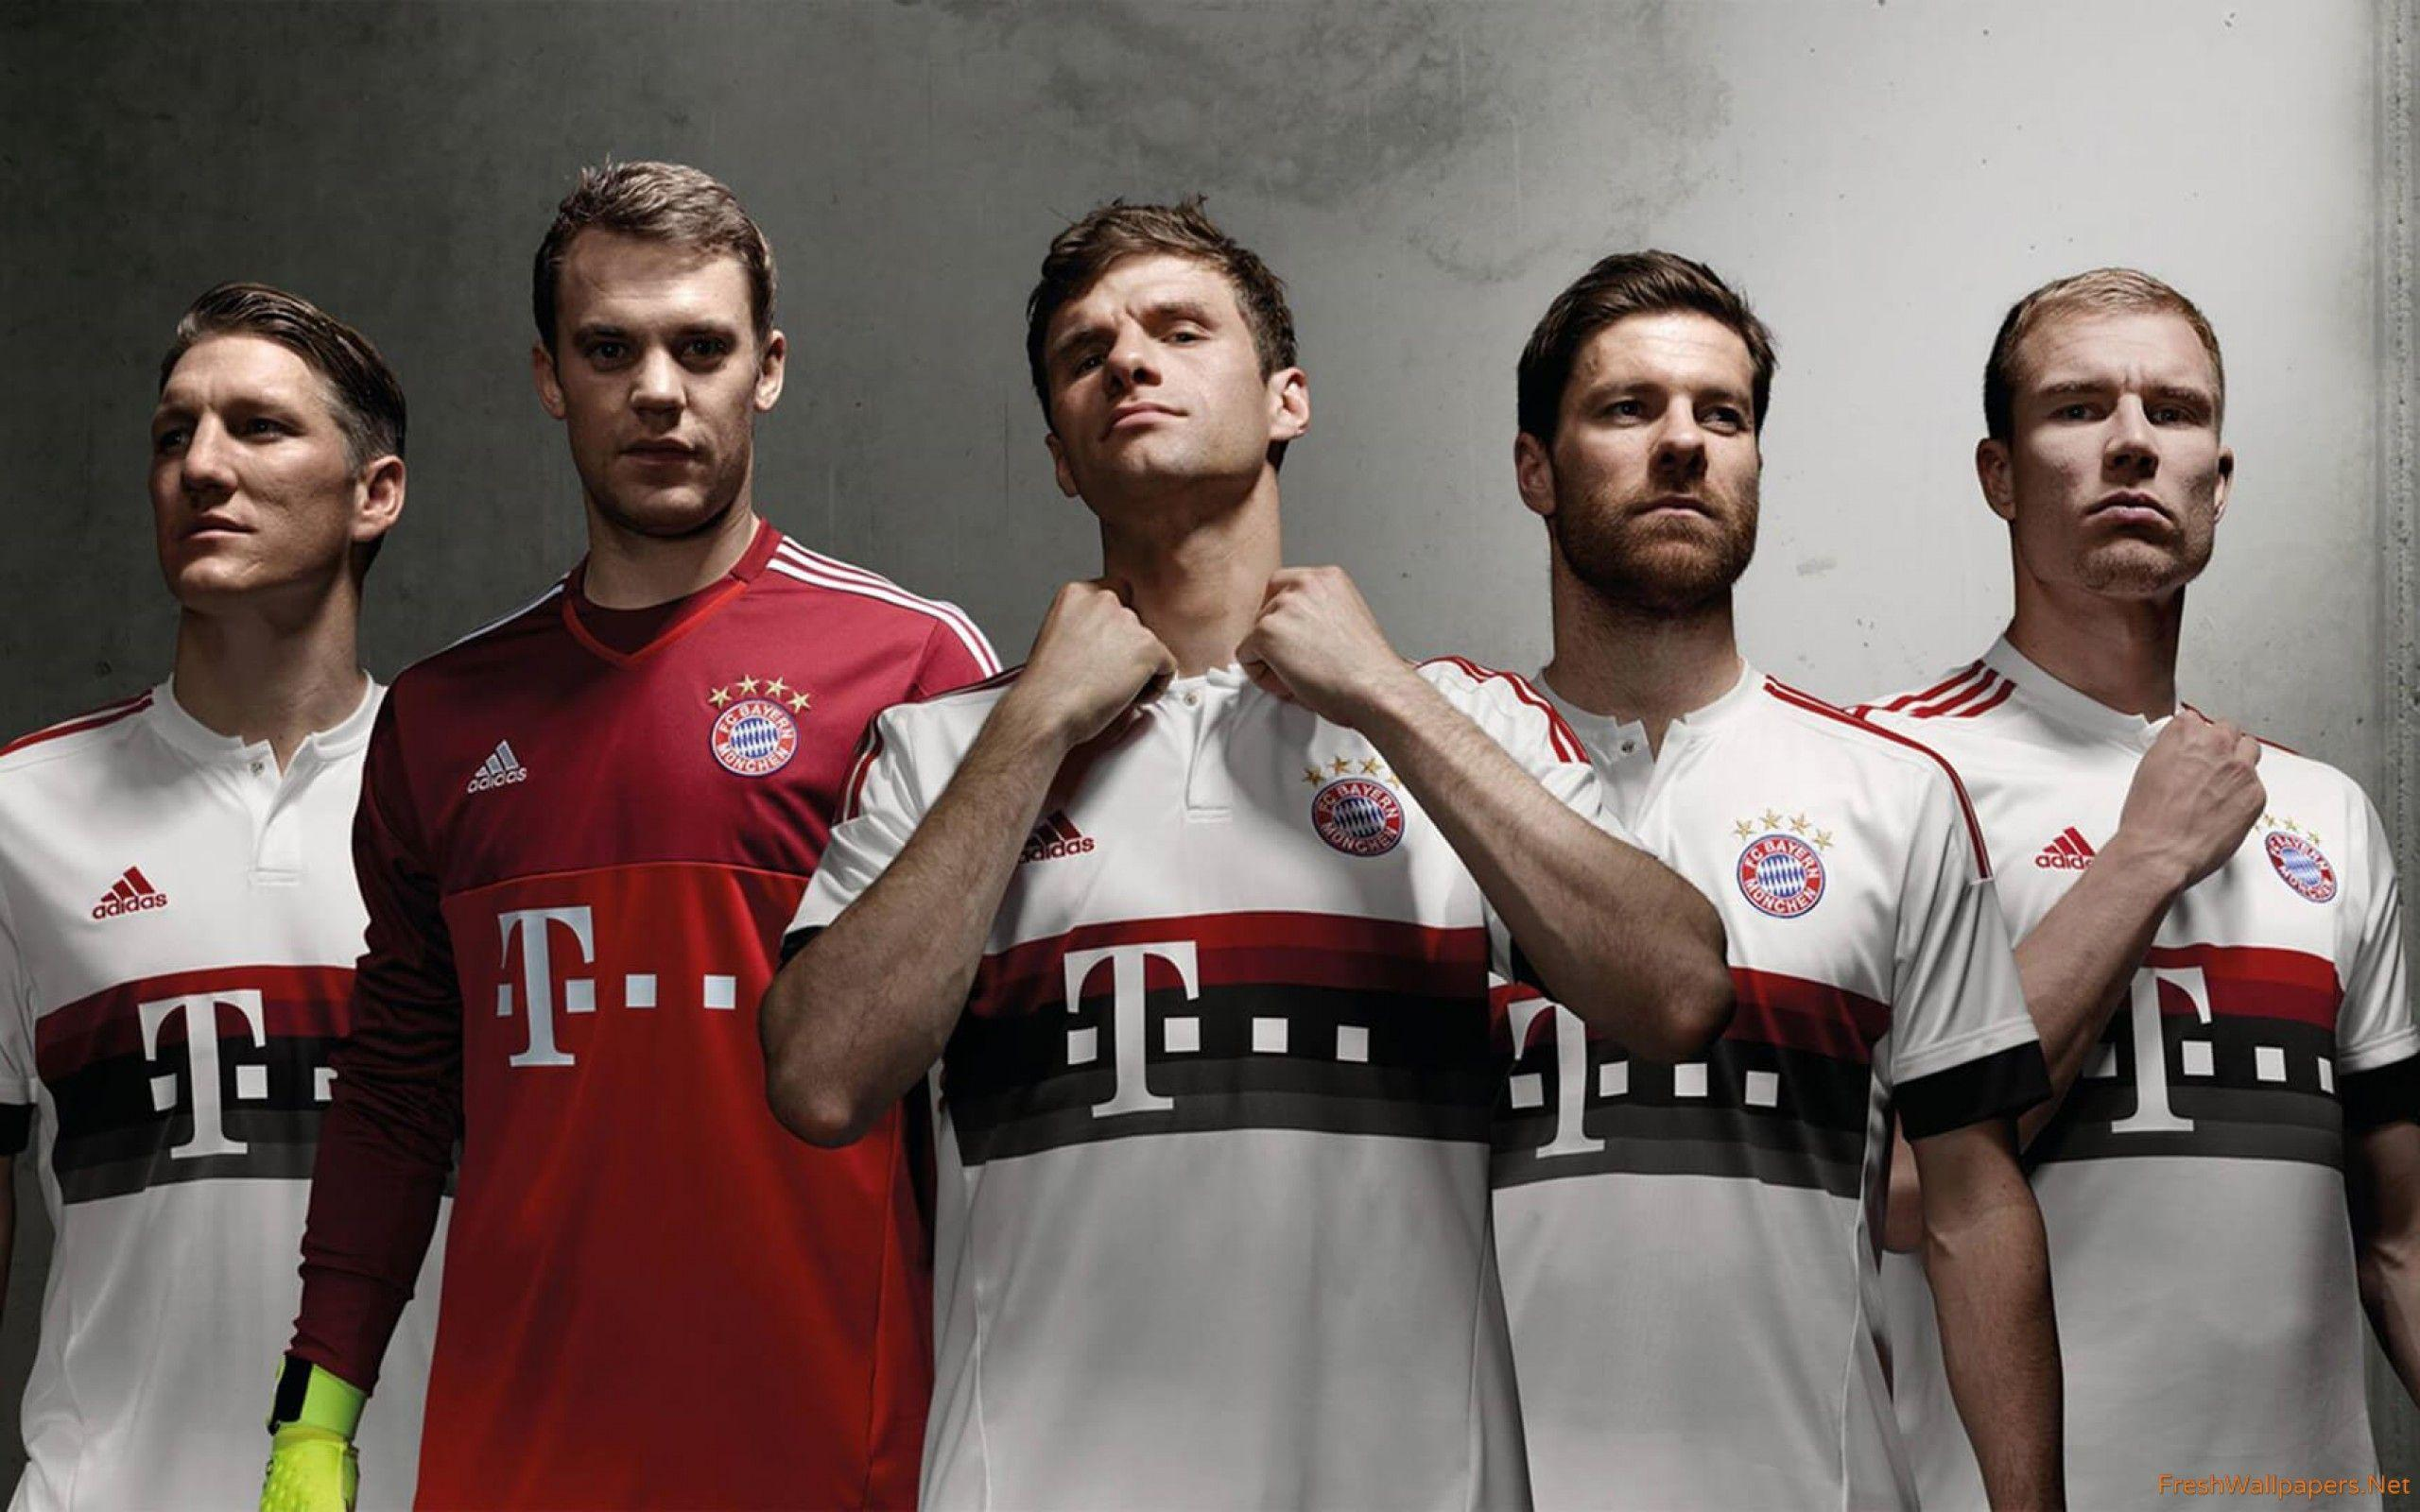 Bayern Munchen Soccer Team wallpaper – wallpaper free download